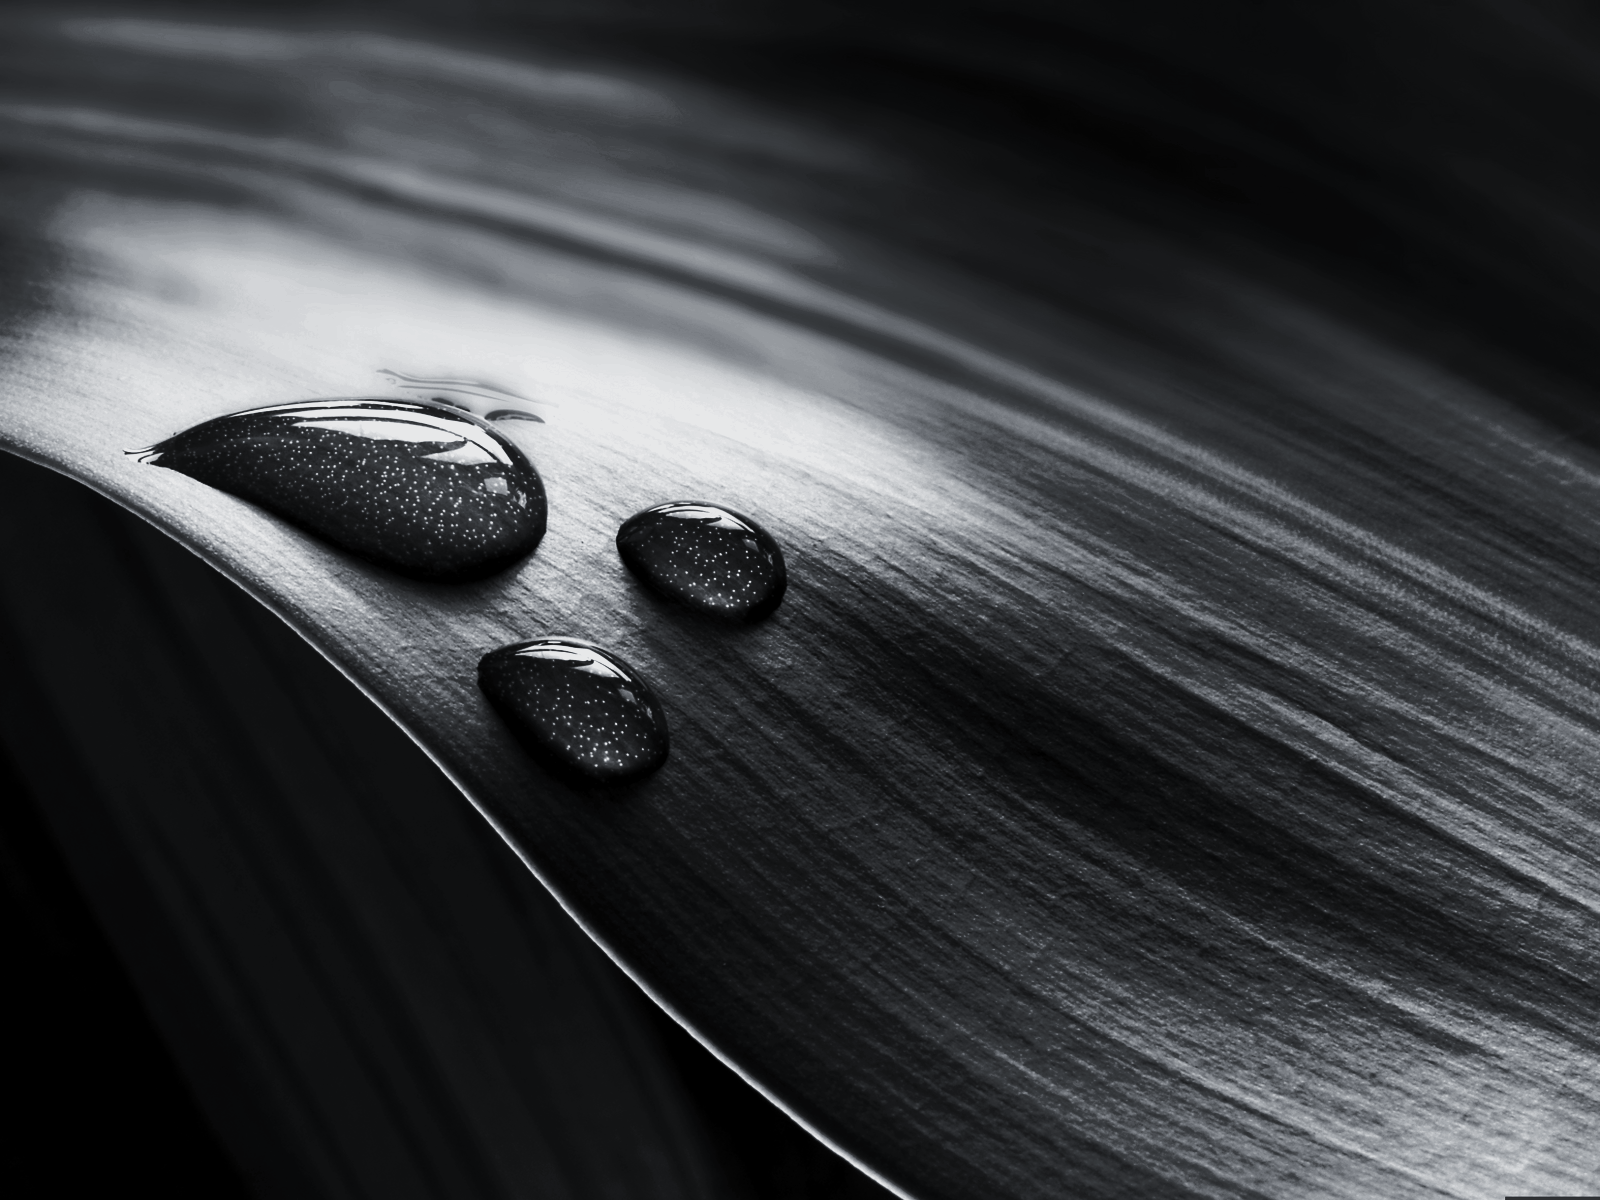 Black and White Leaf Water Drops wallpaper 2010 and BREAKING 1600x1200